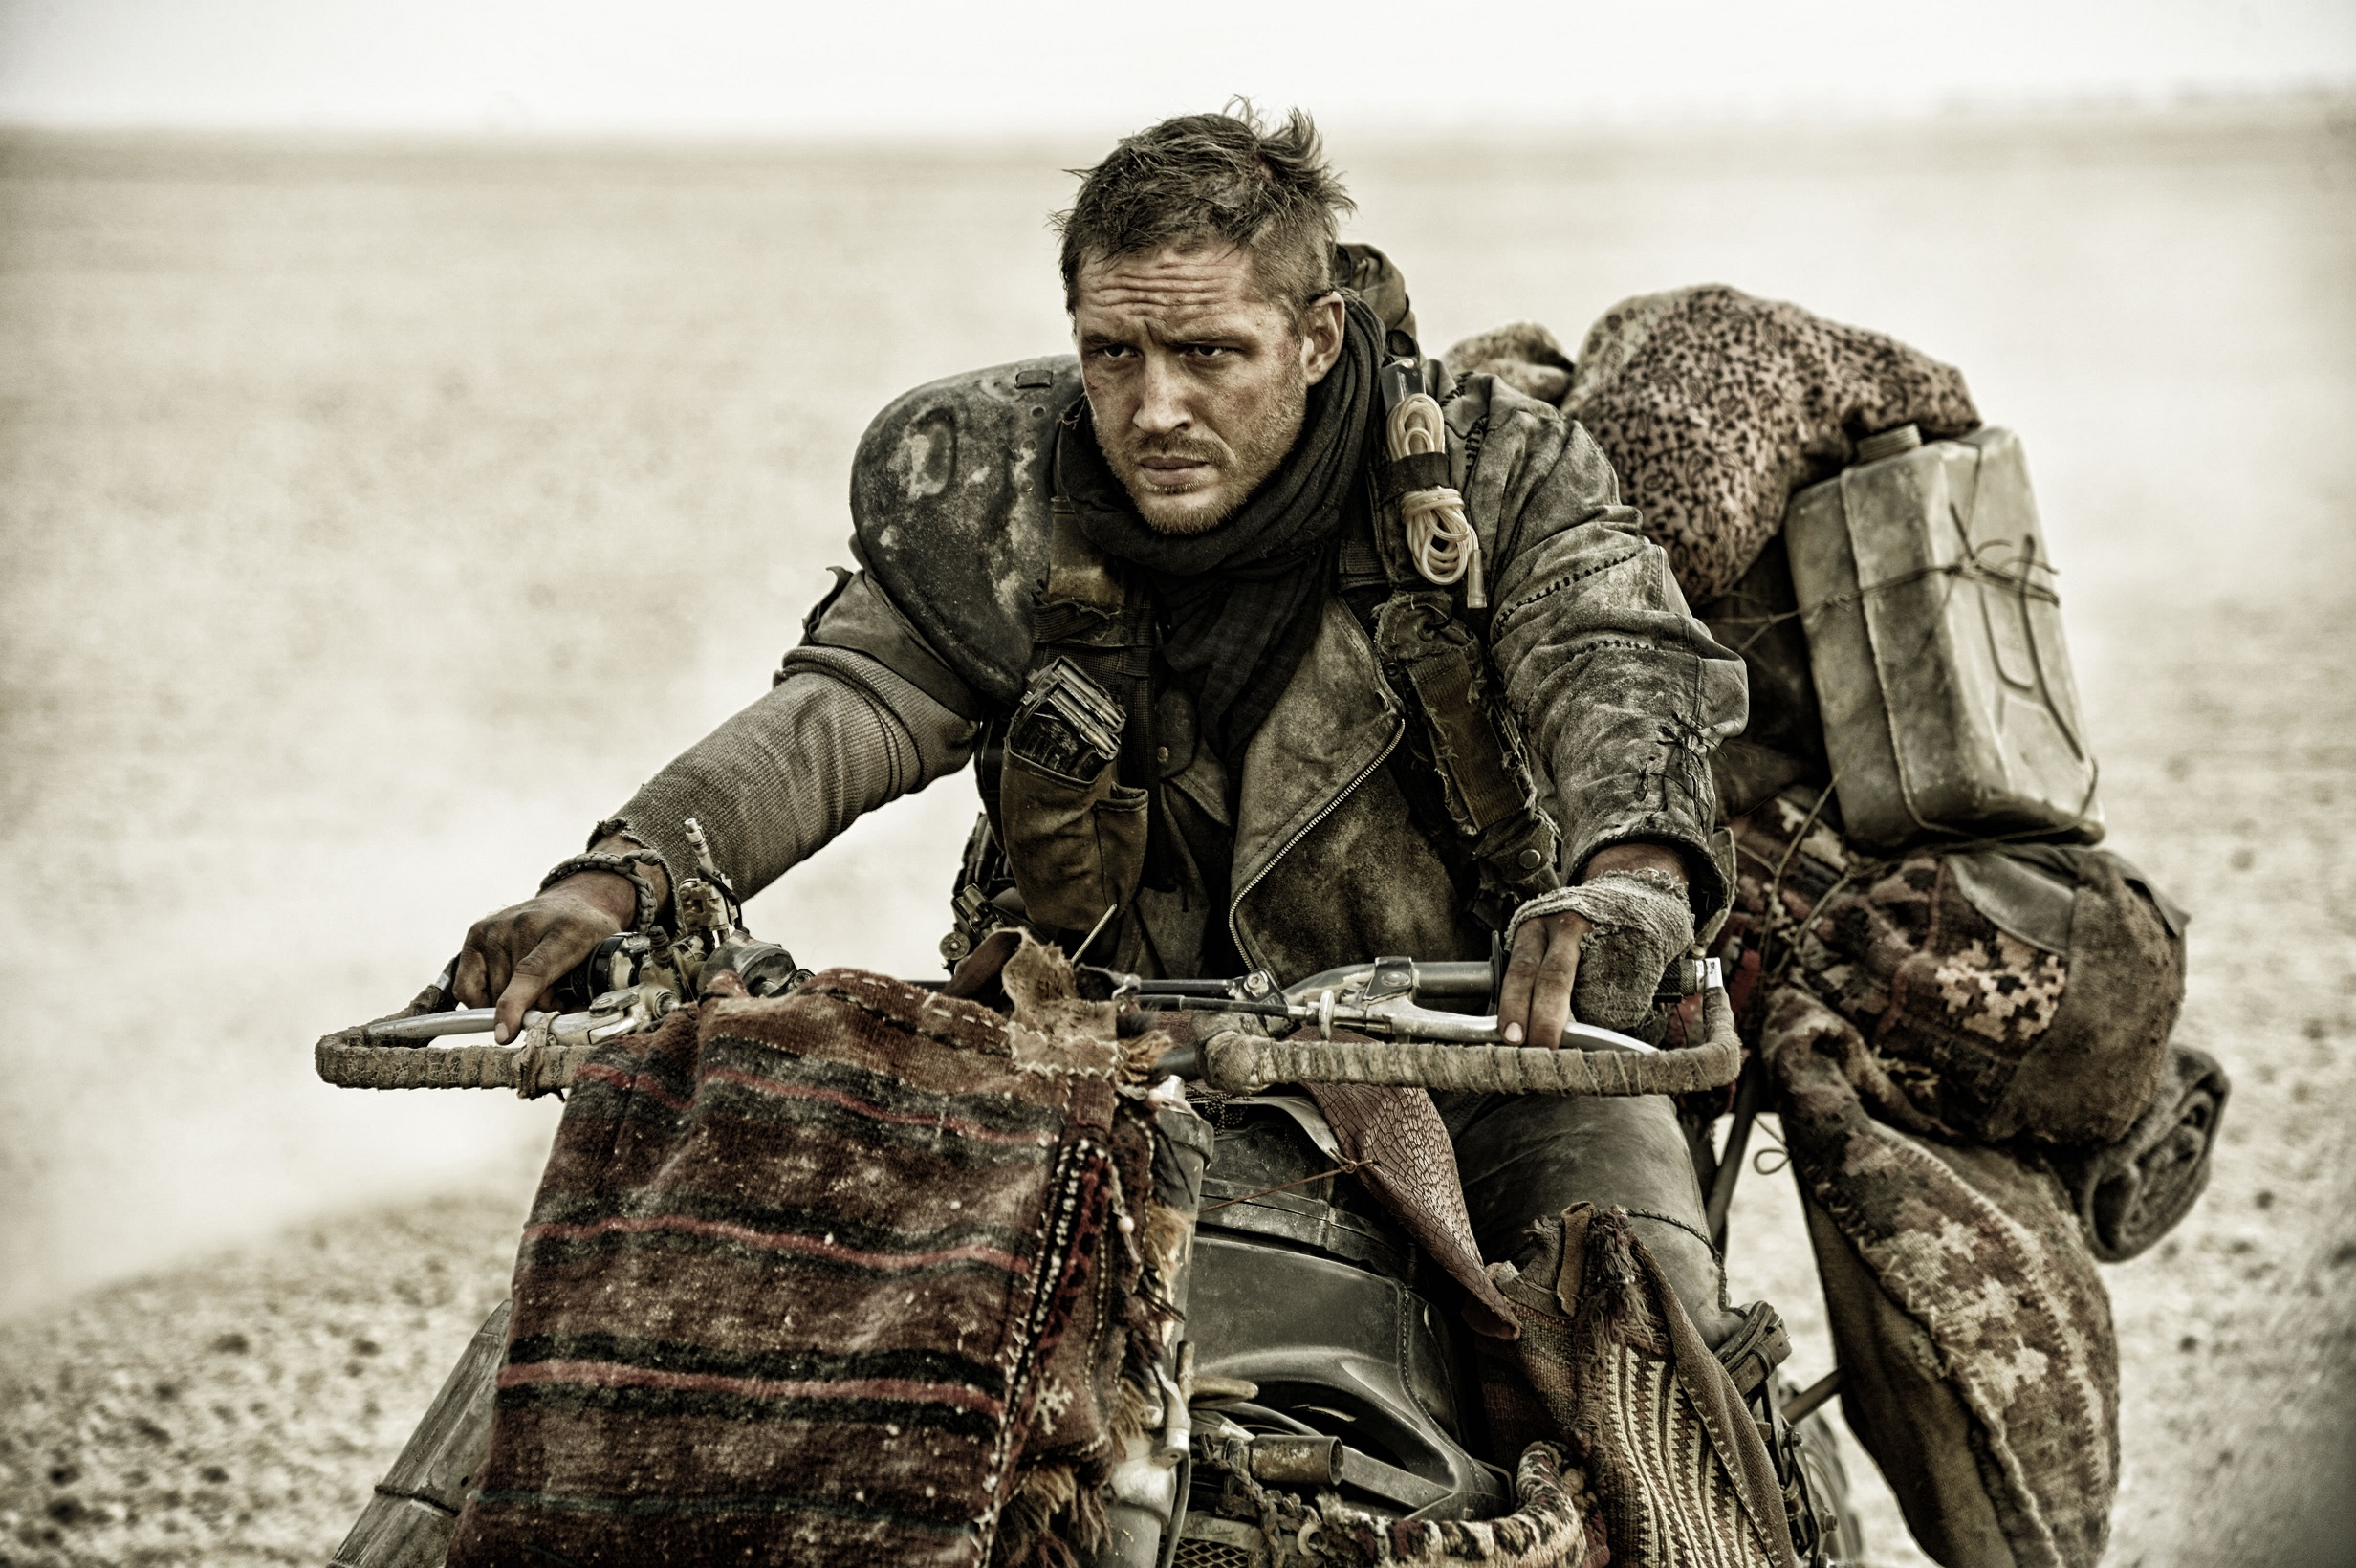 Mad Max Fury Road-Official Poster PHOTOS-11DEZEMBRO2014-01 - Copia